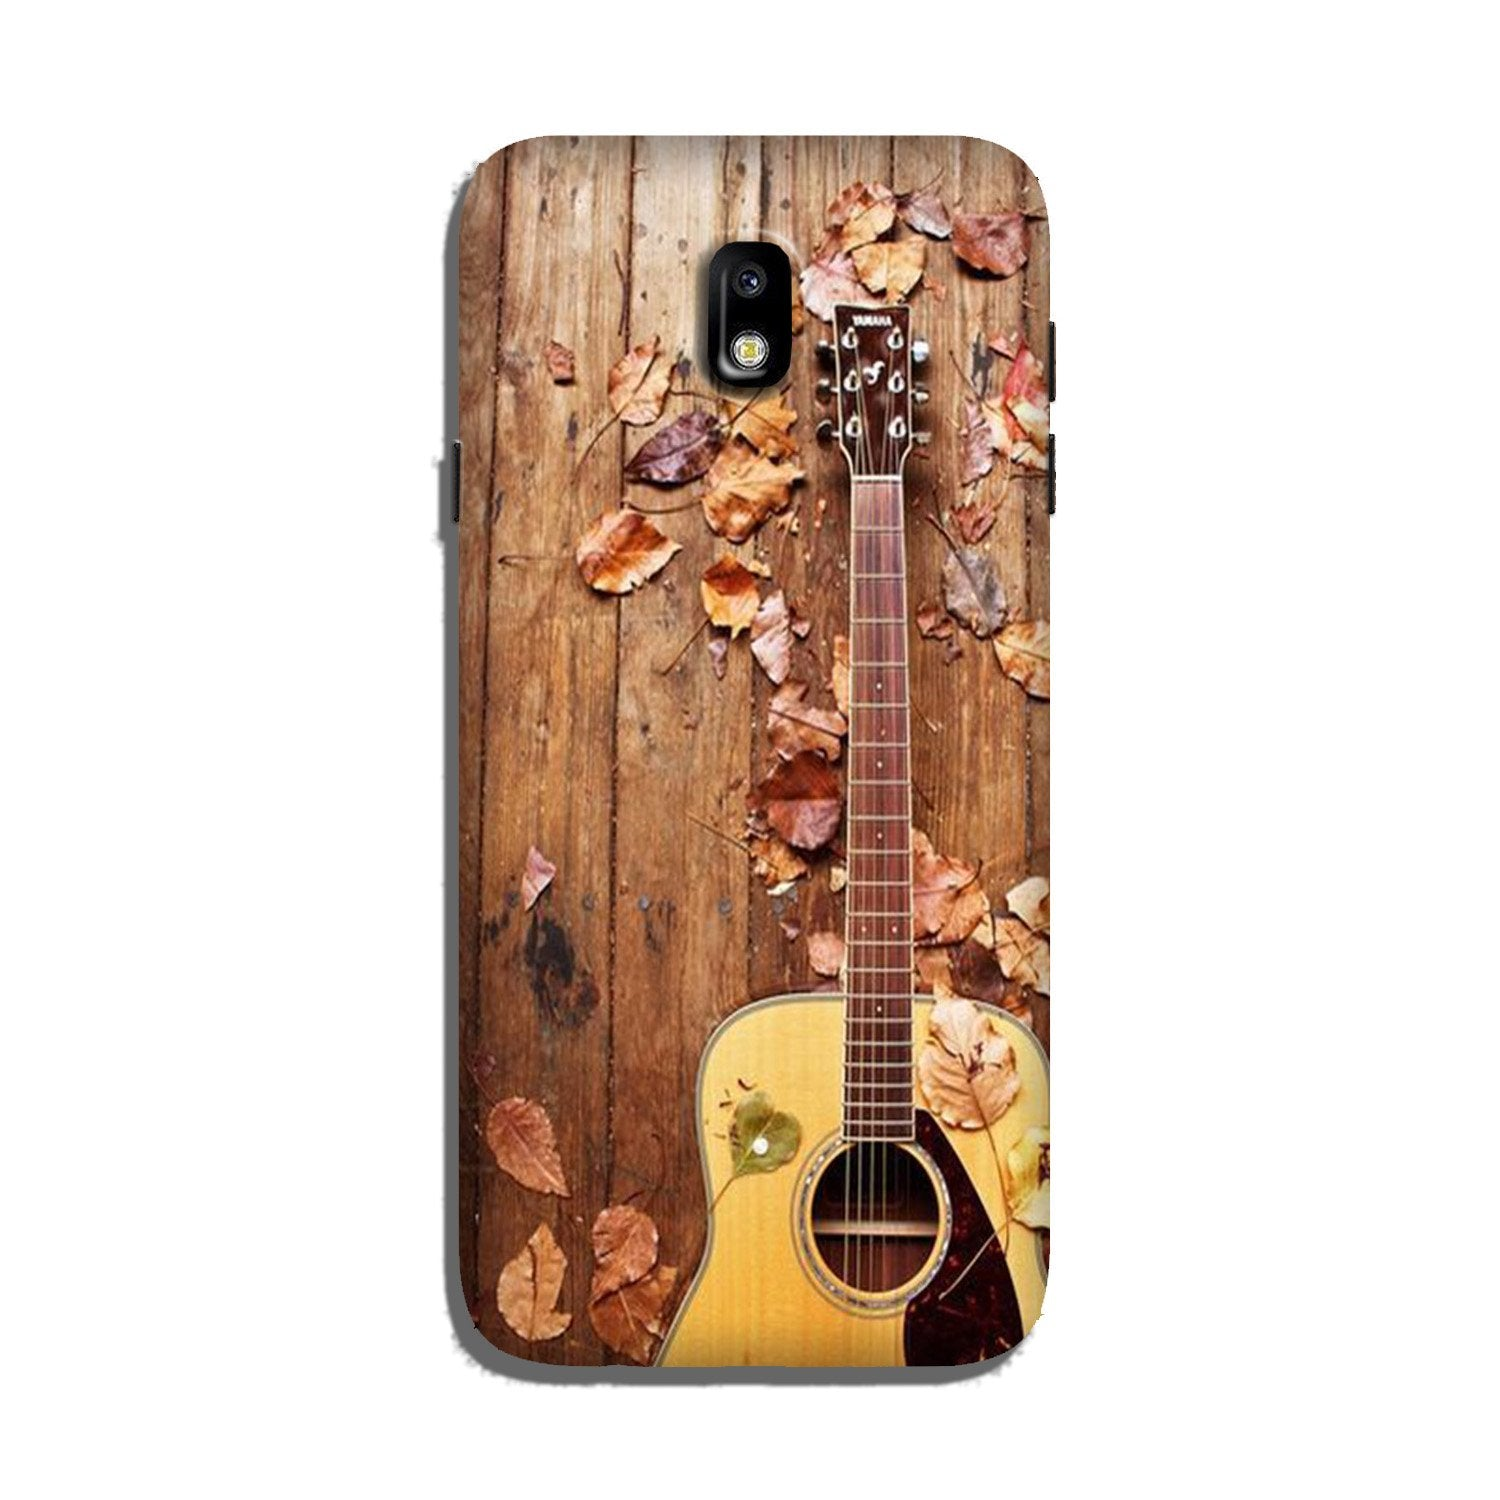 Guitar Case for Galaxy J5 Pro